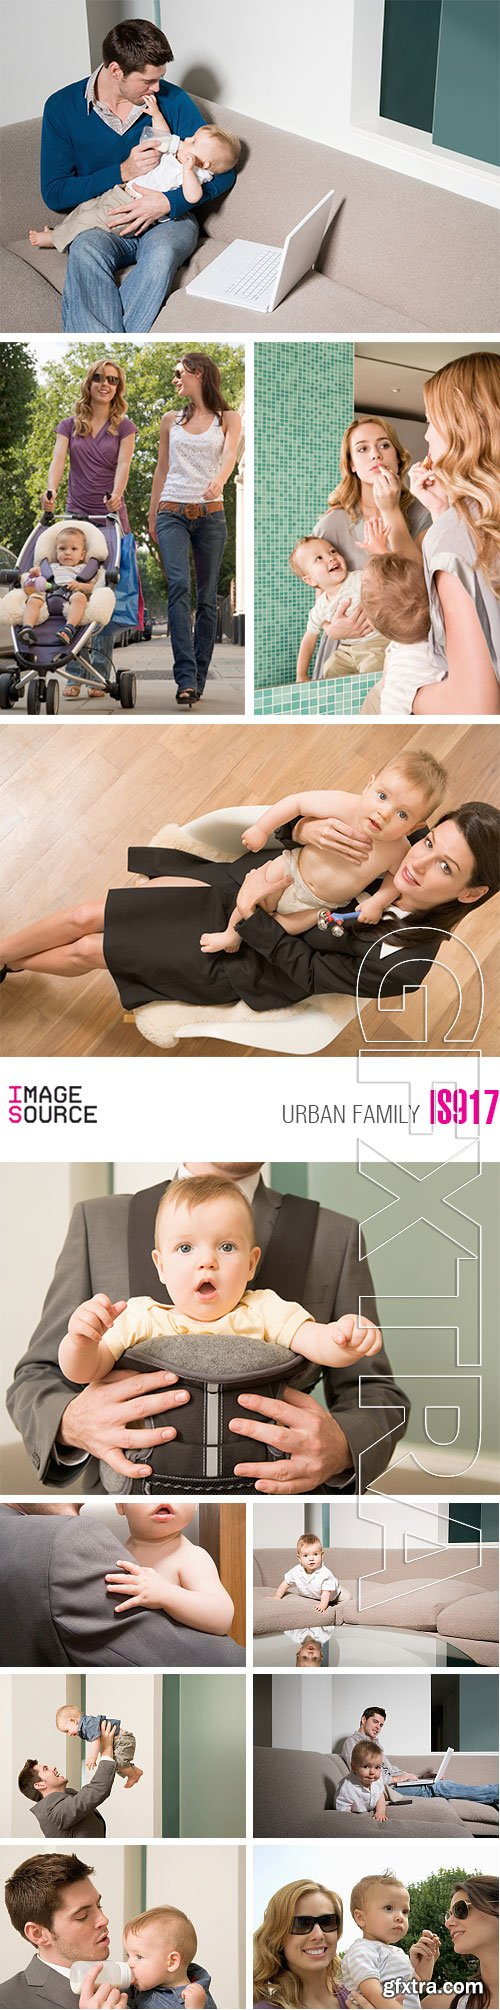 Image Source IS917 Urban Family